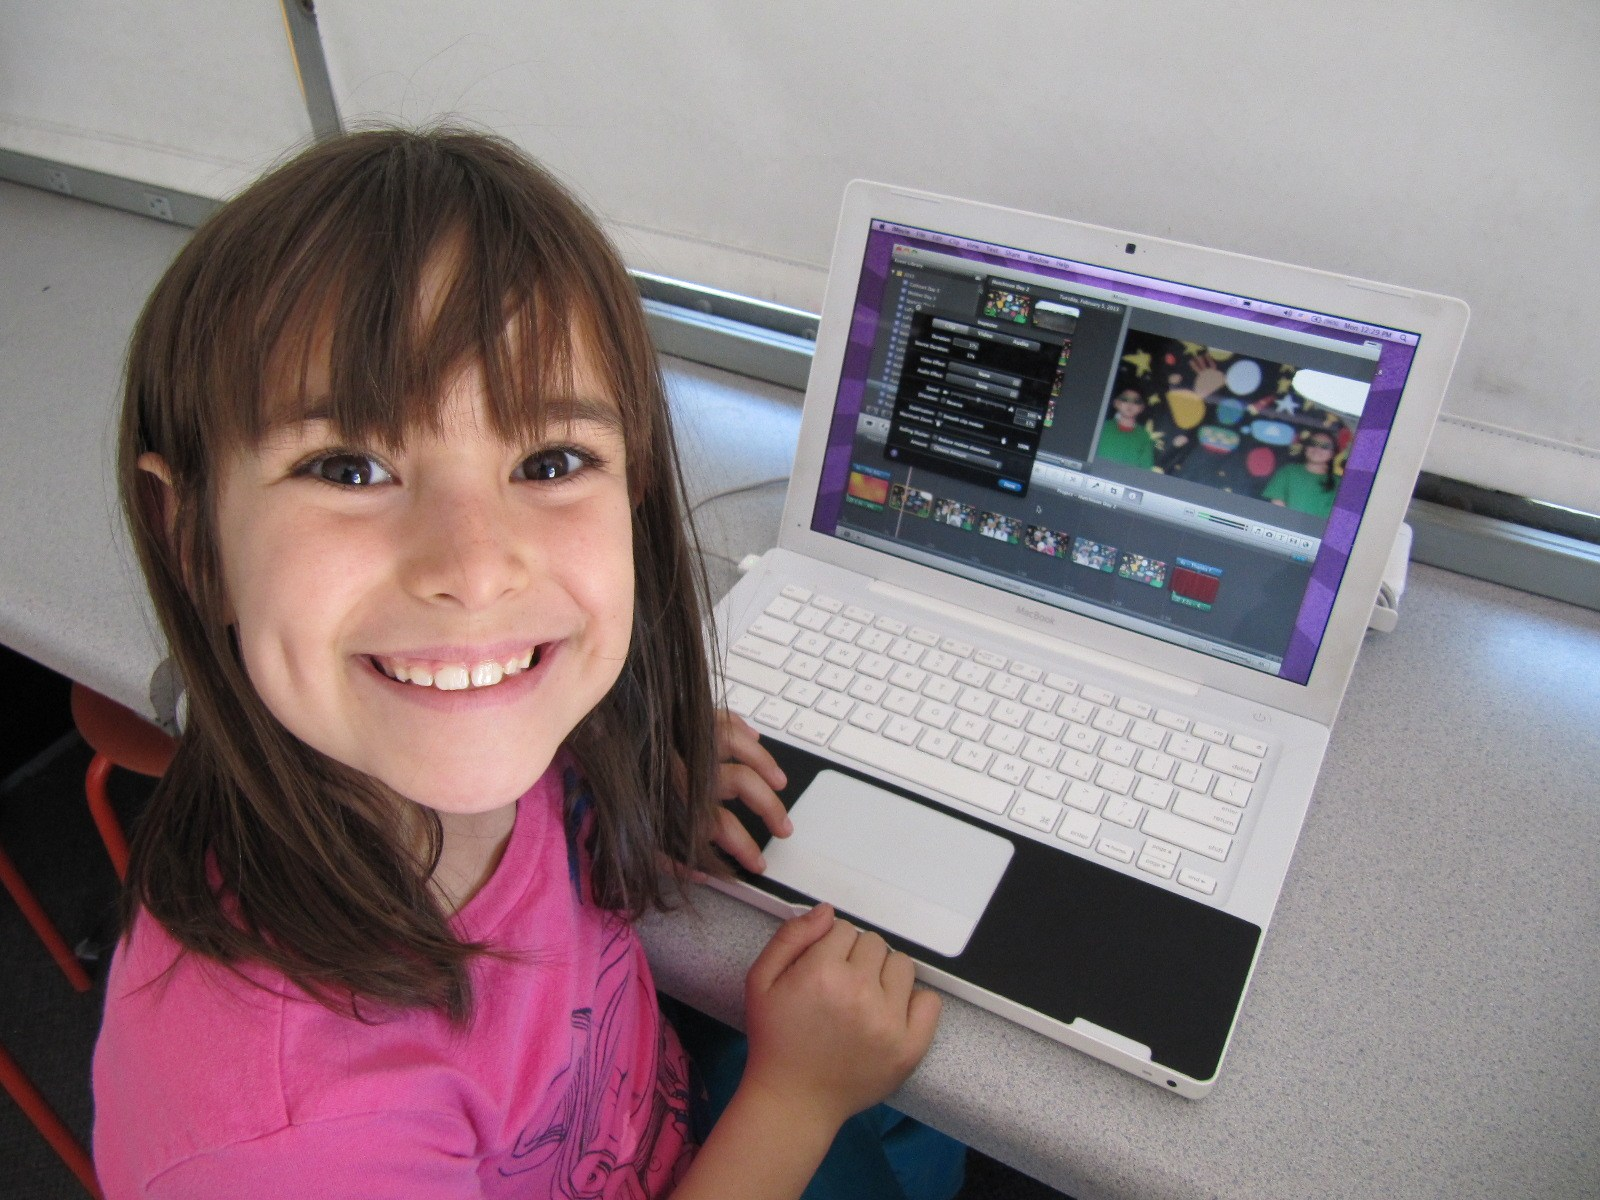 A gril editing her film on a computer.